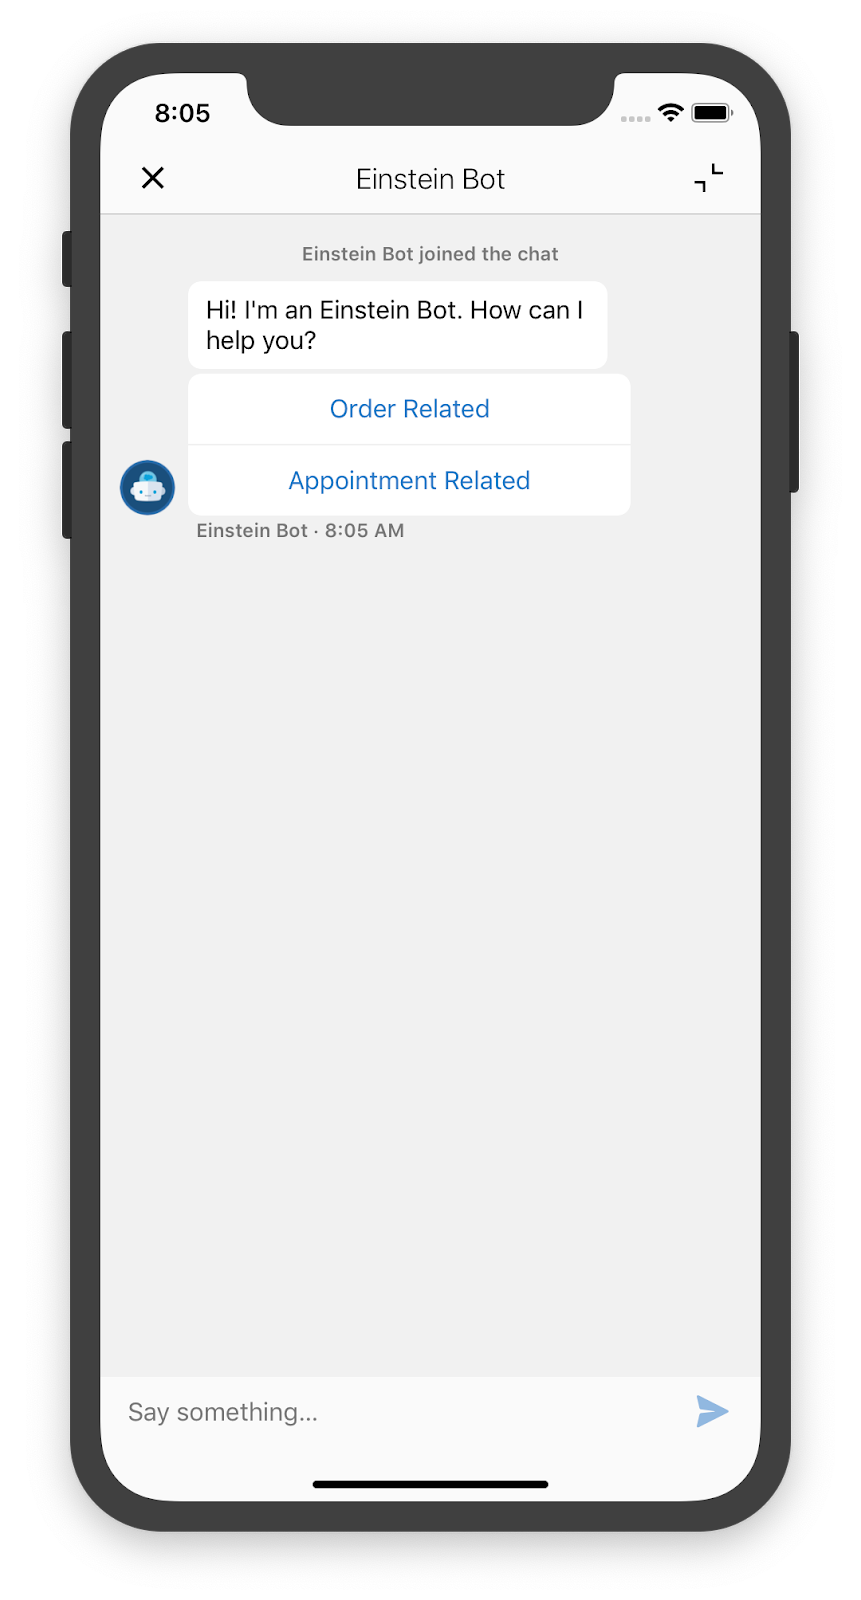 An iPhone with a chat message from an Einstein Bot, including buttons to help the customer select whether their conversation is Order or Appointment related.